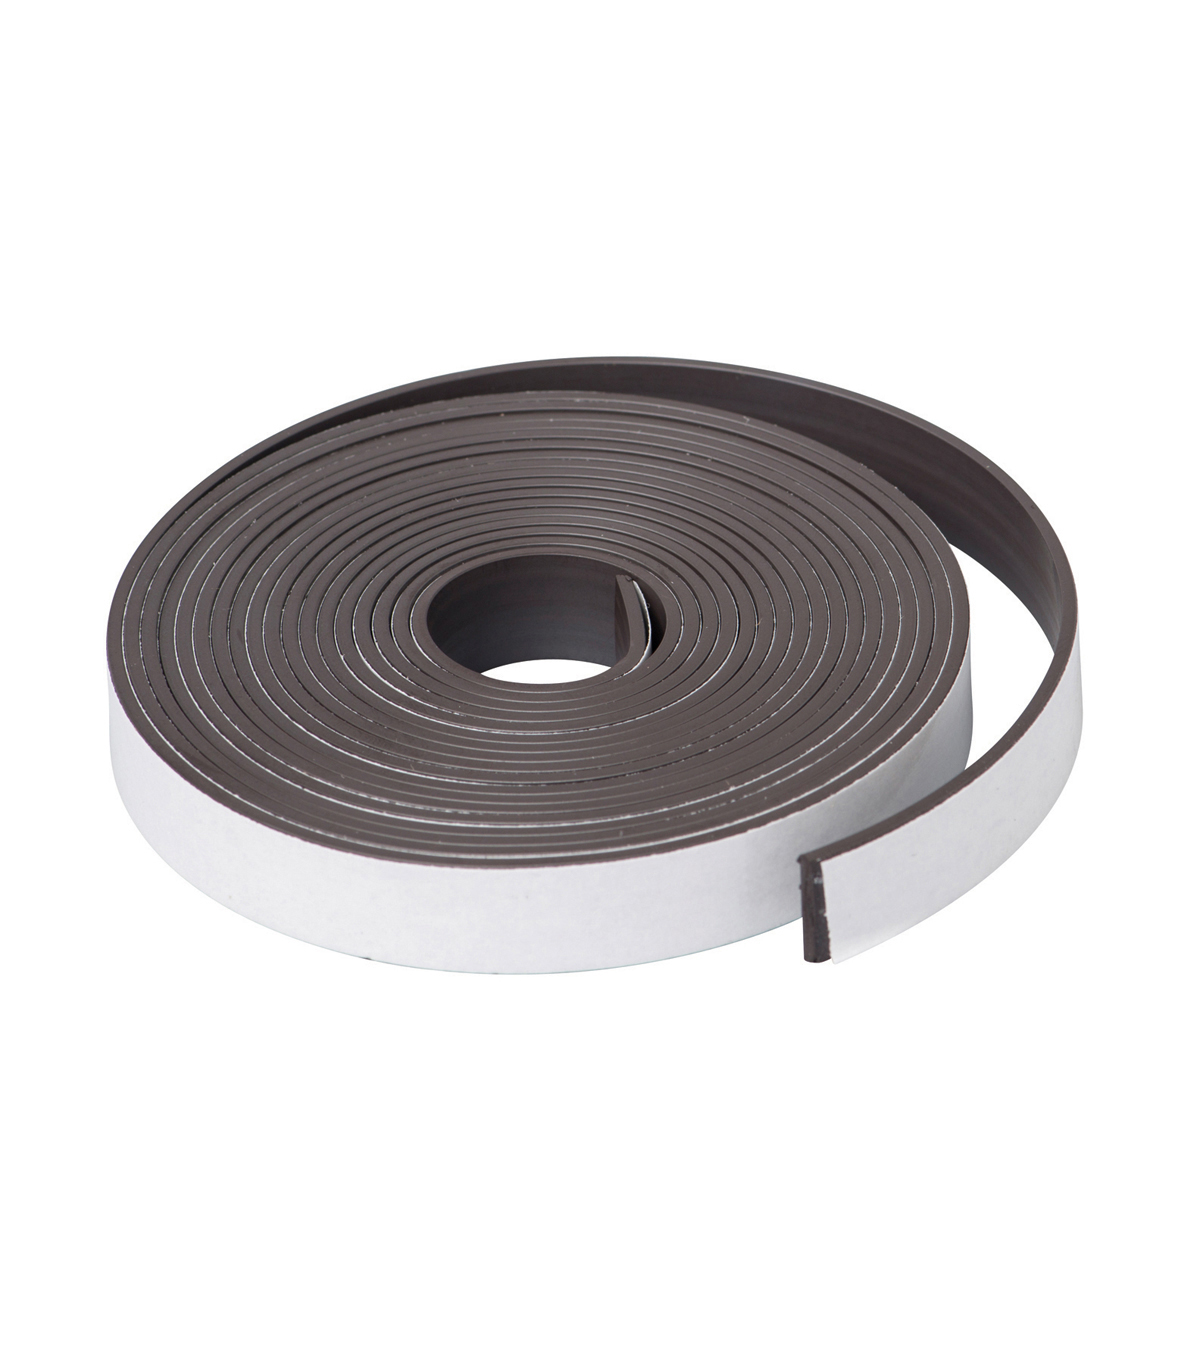 Dowling Magnets Adhesive Magnet Strip Roll, 1\u0022 x 10\u0027, 6 Rolls